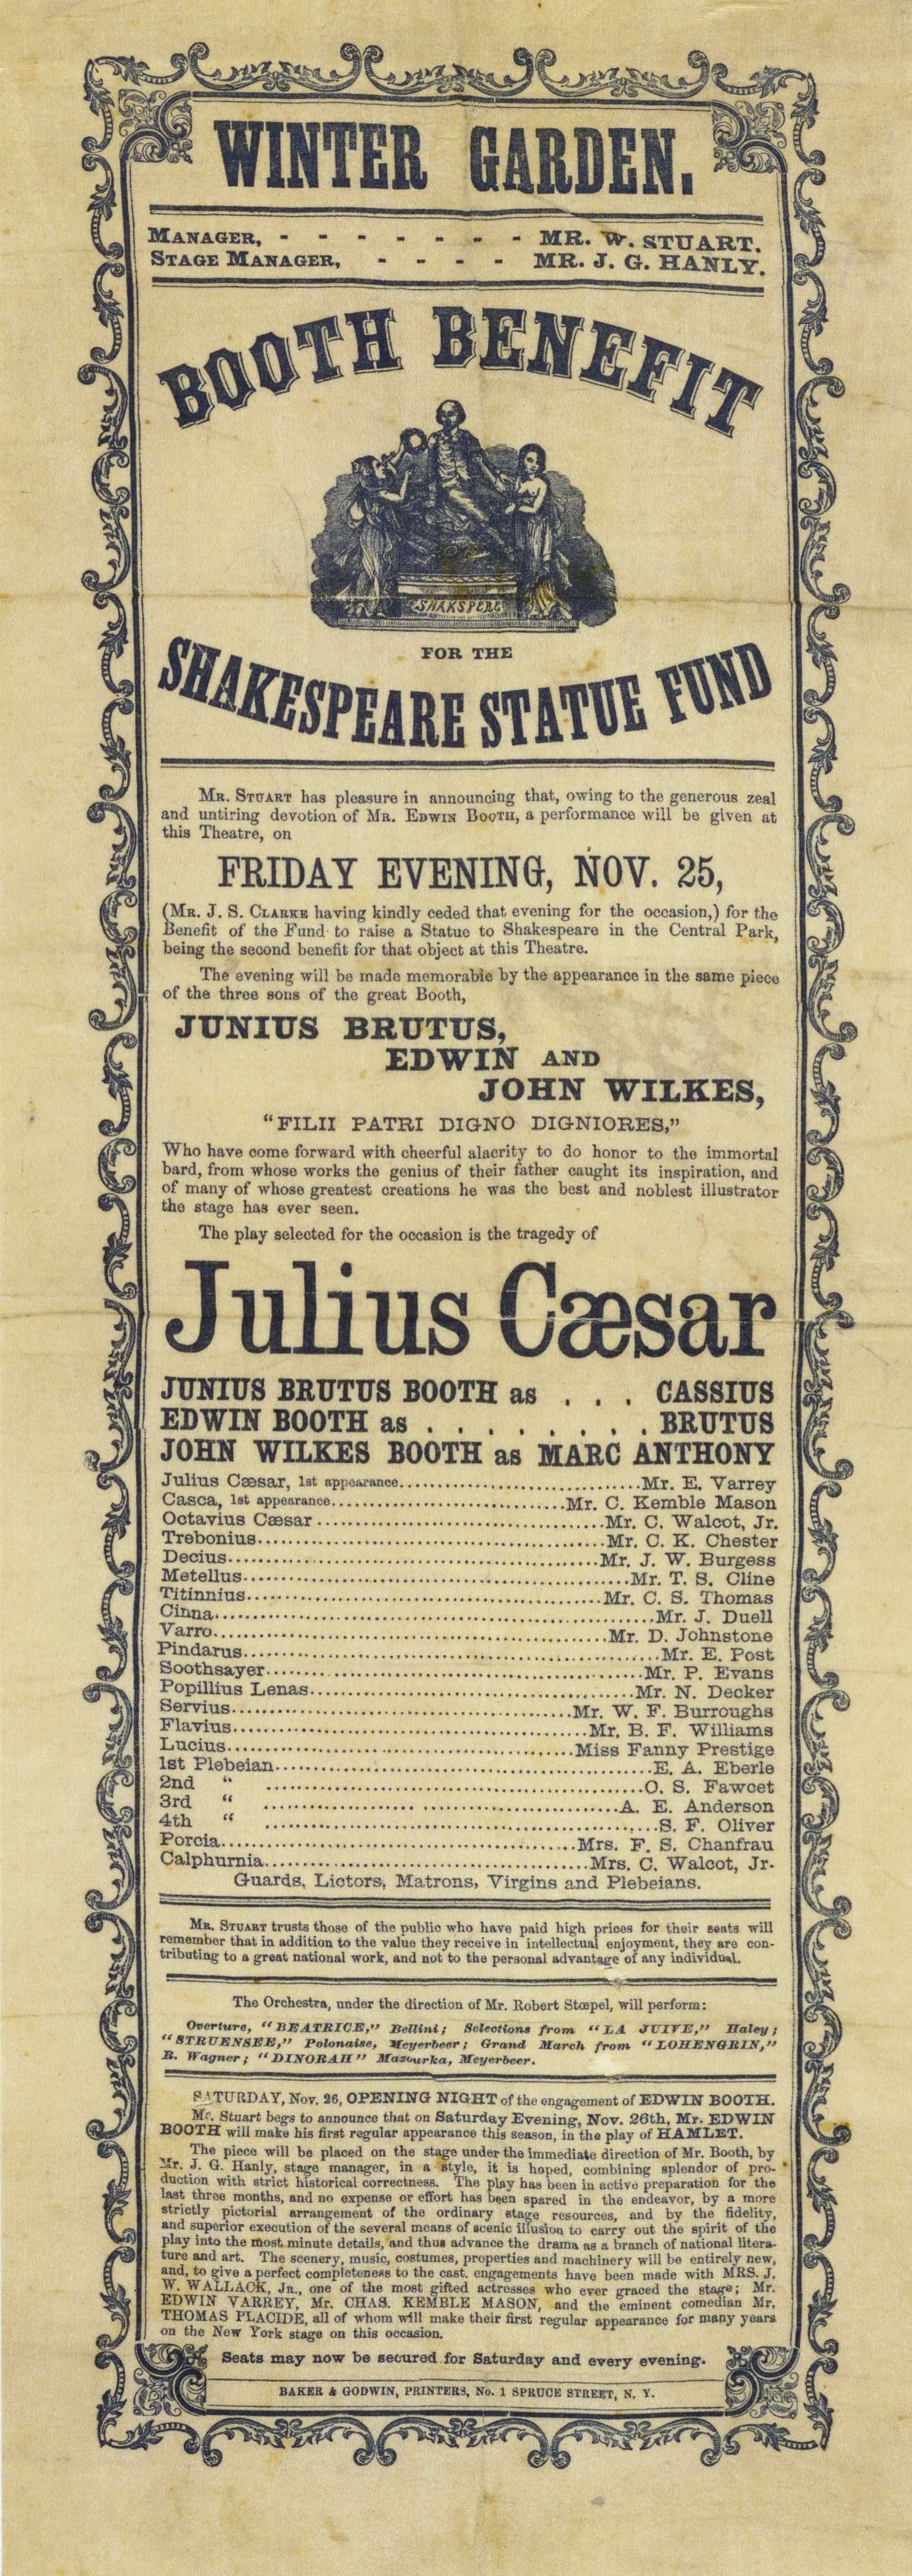 Playbill for a production of Julius Caesar in Central Park, starring the Booth Brothers, 1865